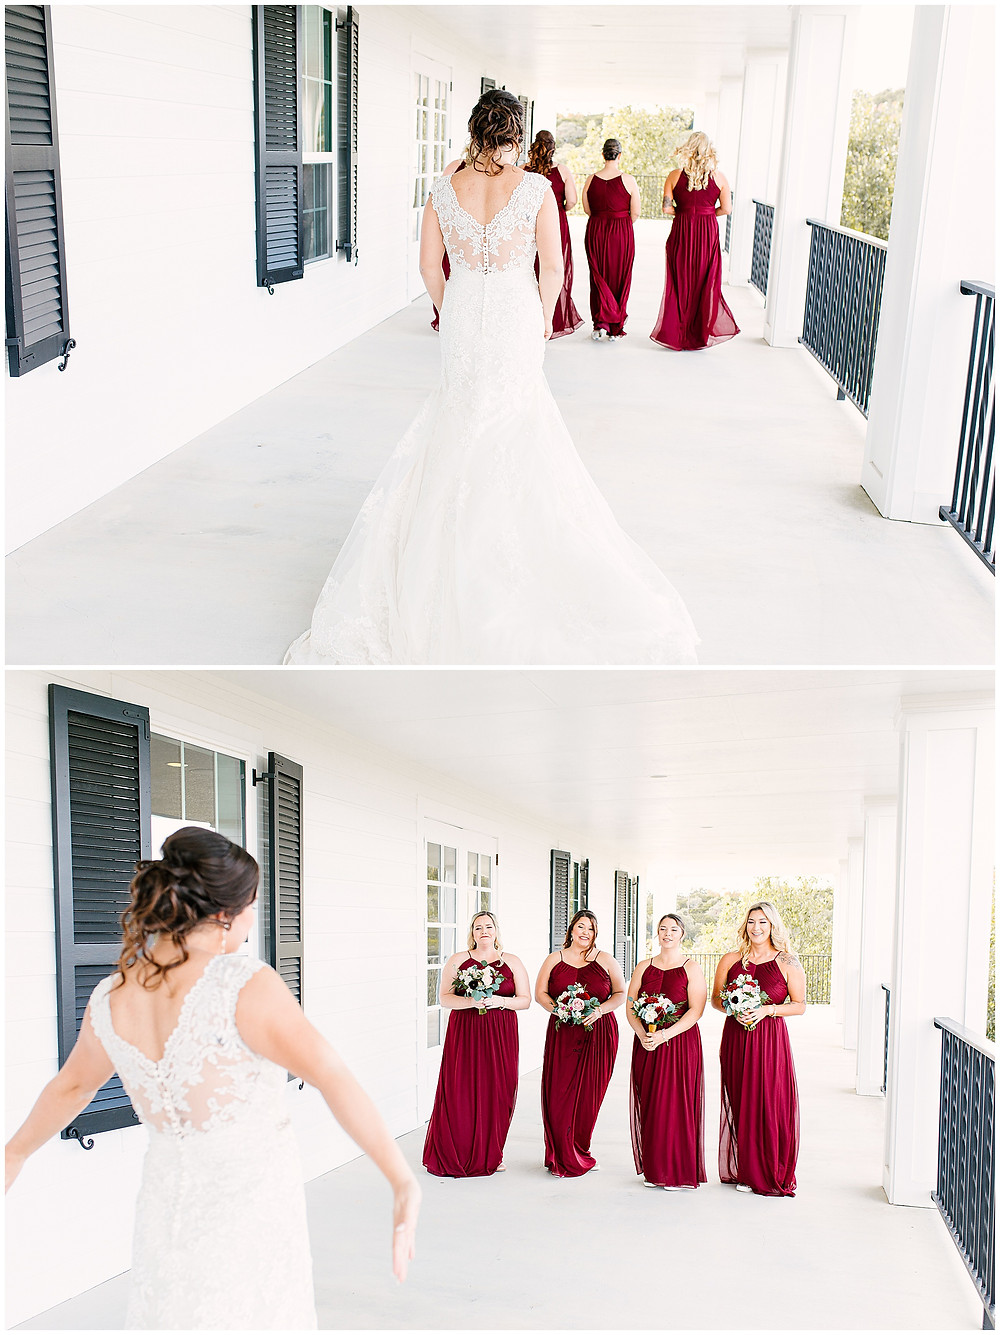 First look with bridesmaids | Boerne Wedding Photographer | Kendall Plantation Wedding | Snap Chic Photography | San Antonio Wedding Photographer | Kendall Plantation Photos | Boerne Wedding Venue